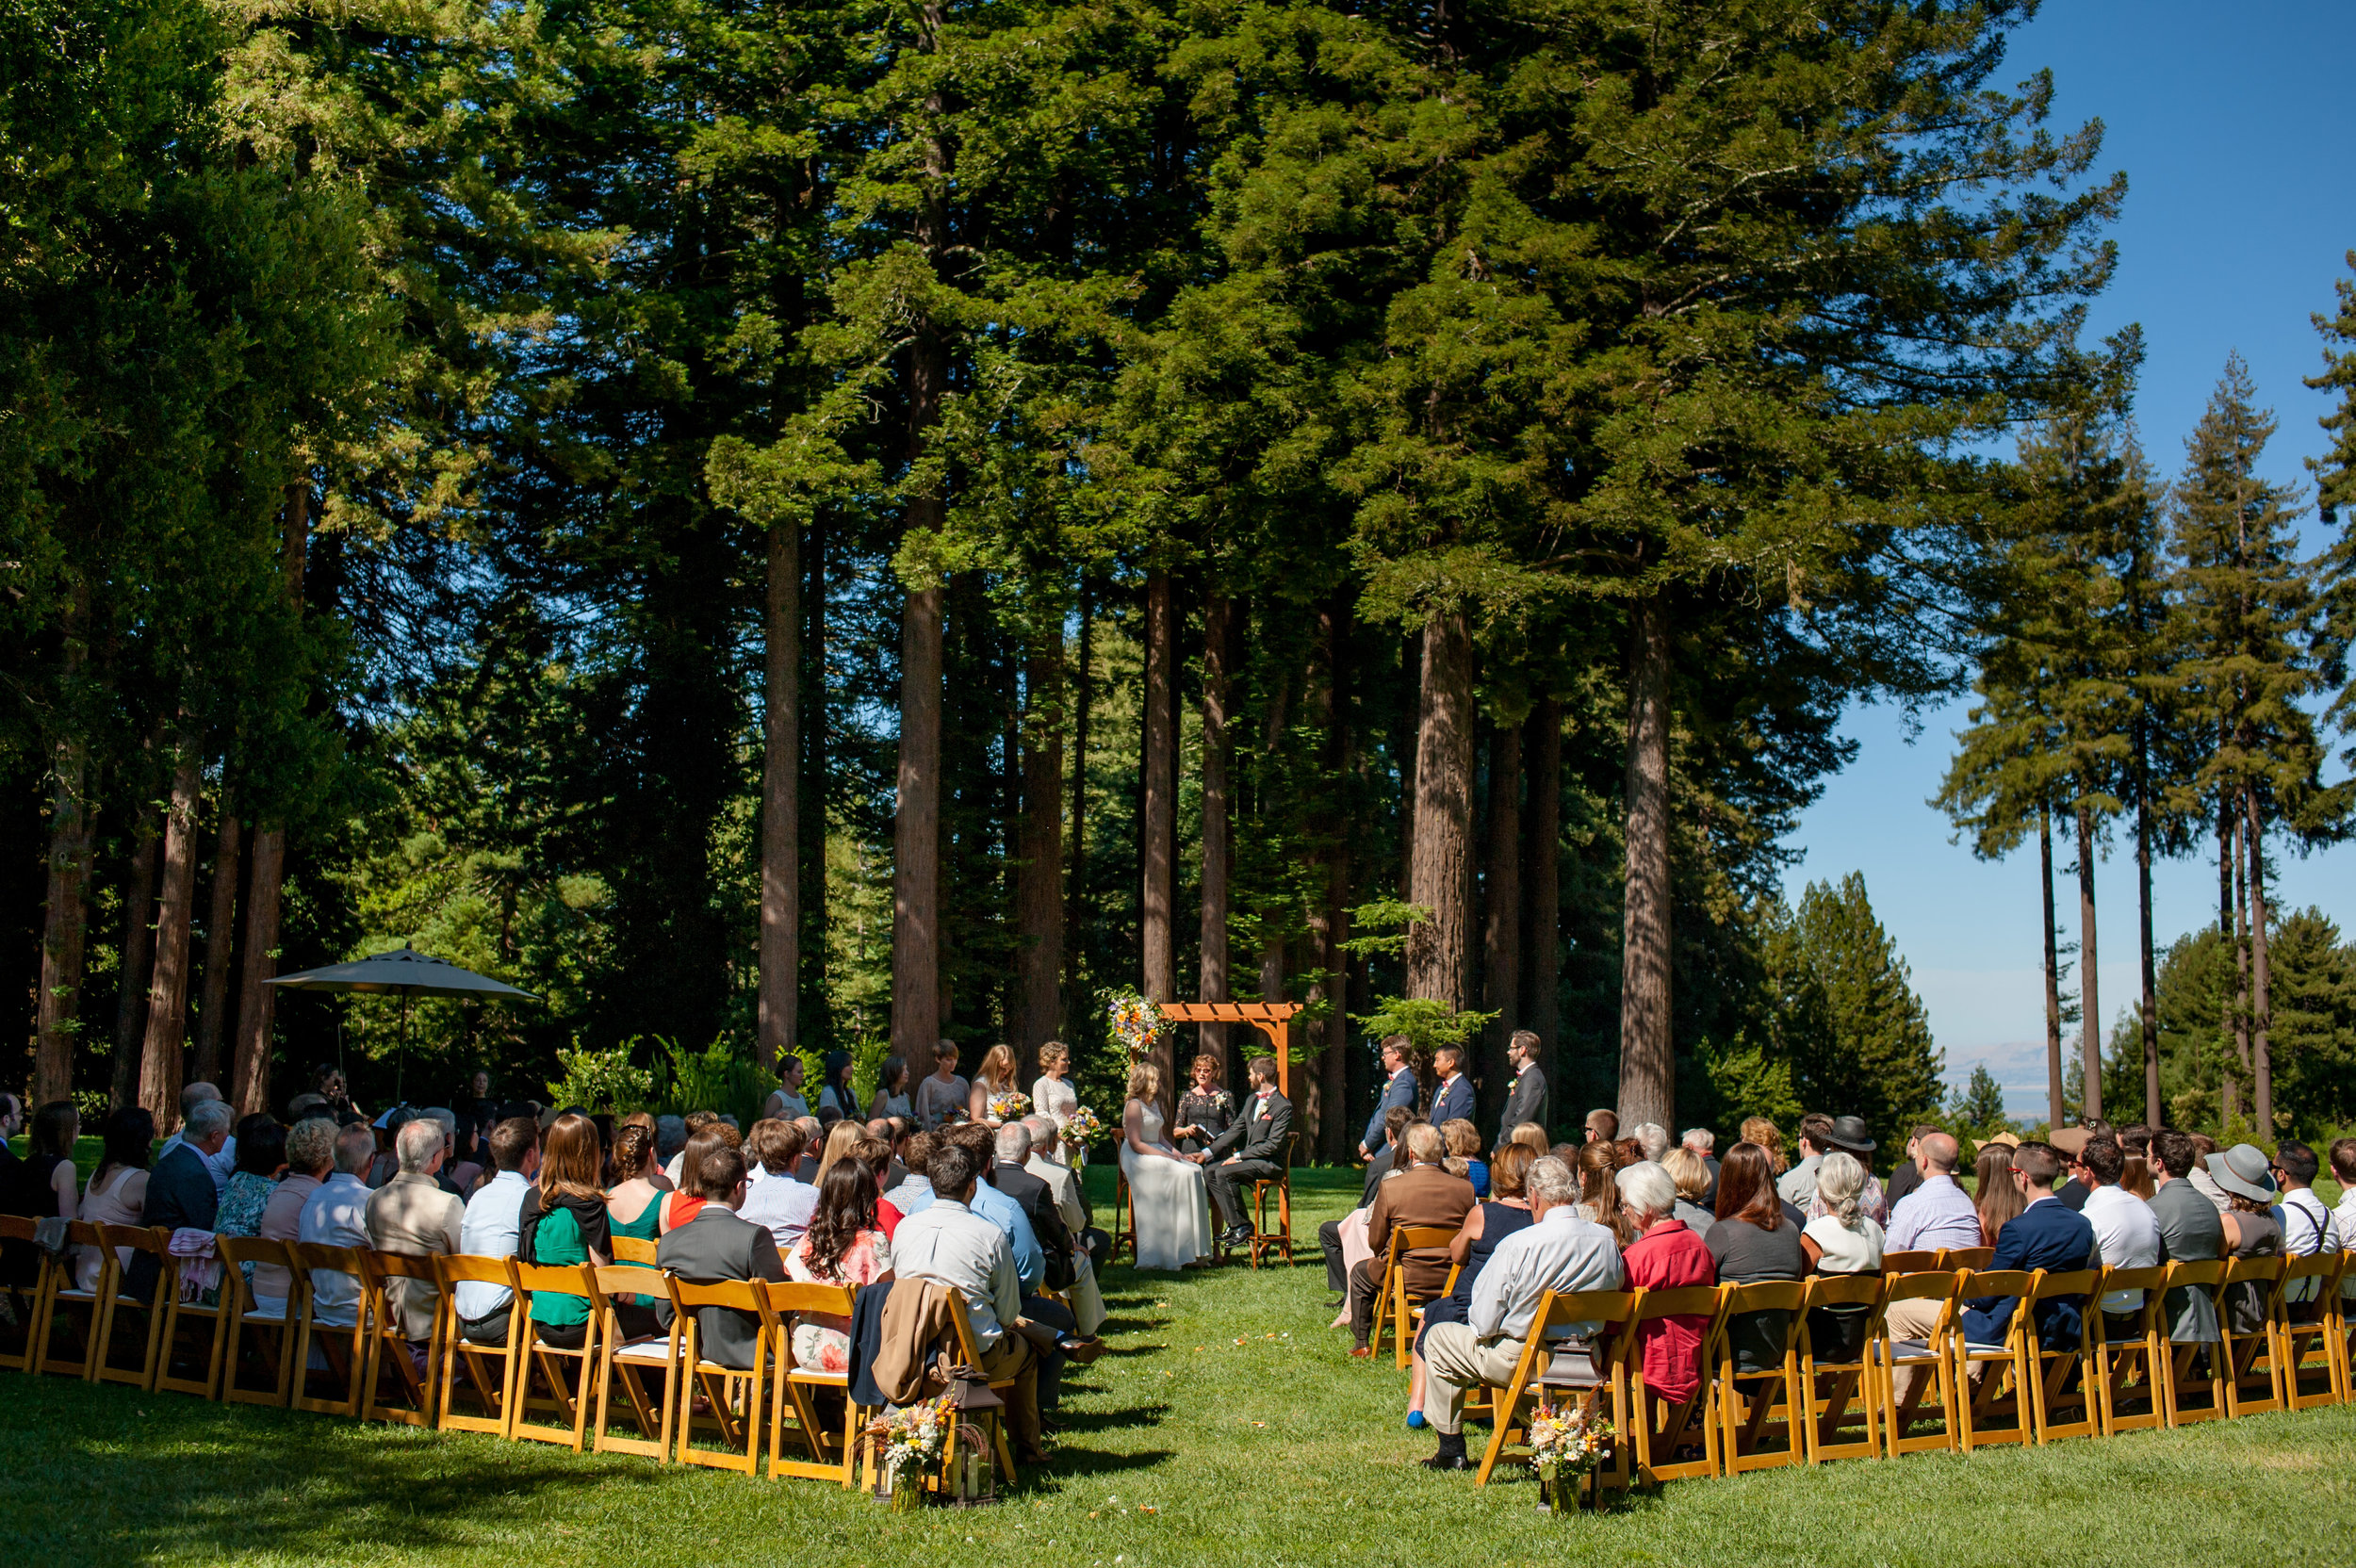 suz-bryan-016-mountain-terrace-woodside-wedding-photographer-katherine-nicole-photography.JPG